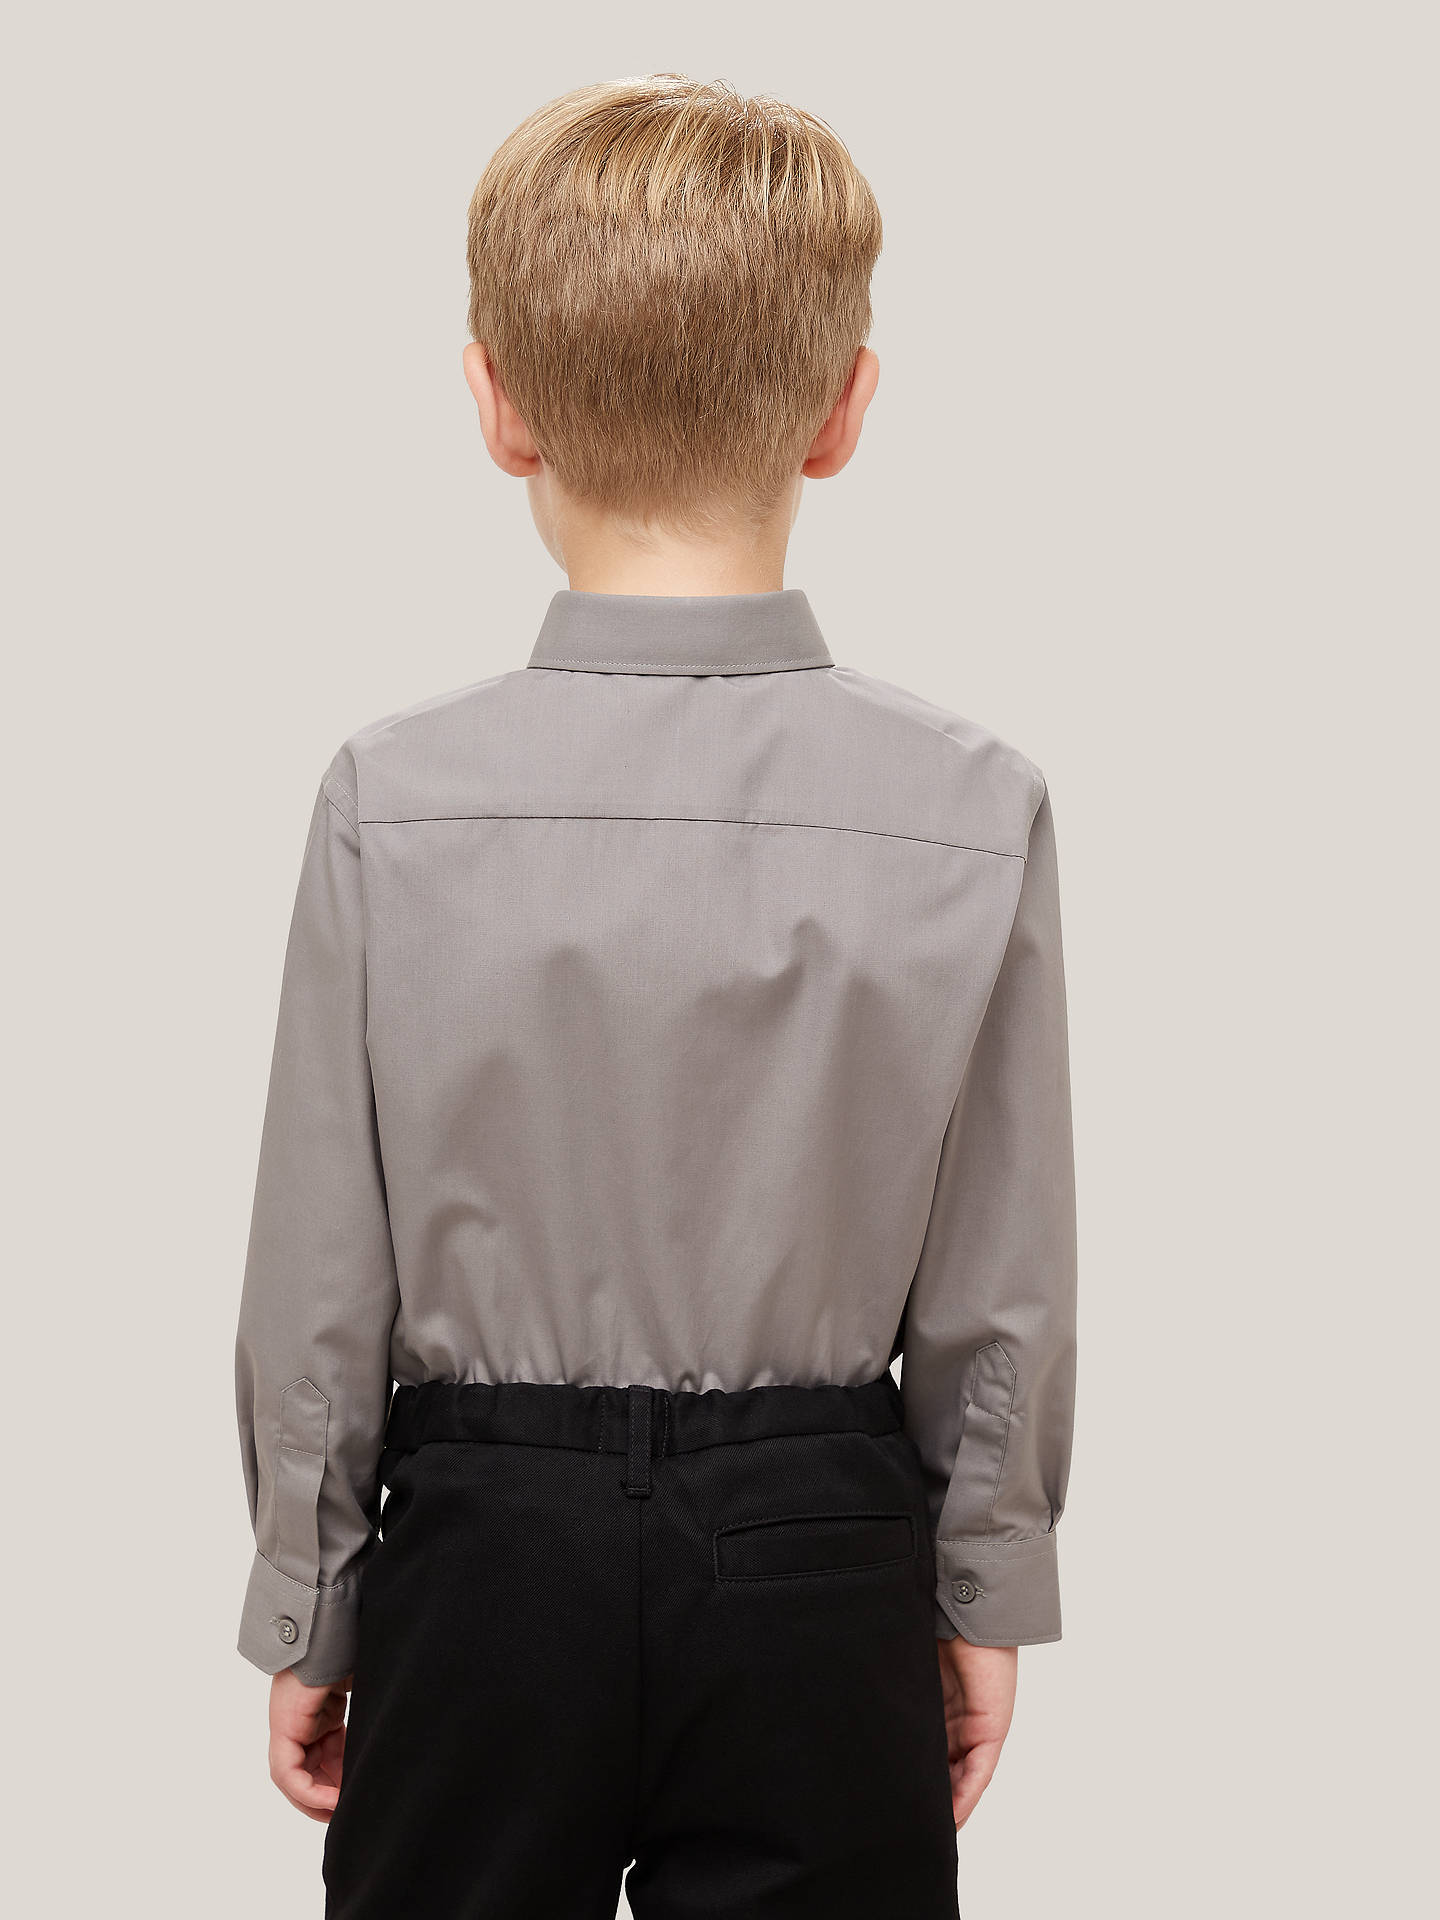 Buy John Lewis & Partners Boys' Non Iron Stain Resistant Long Sleeve School Shirt, Pack of 2, Grey, 3 years Online at johnlewis.com